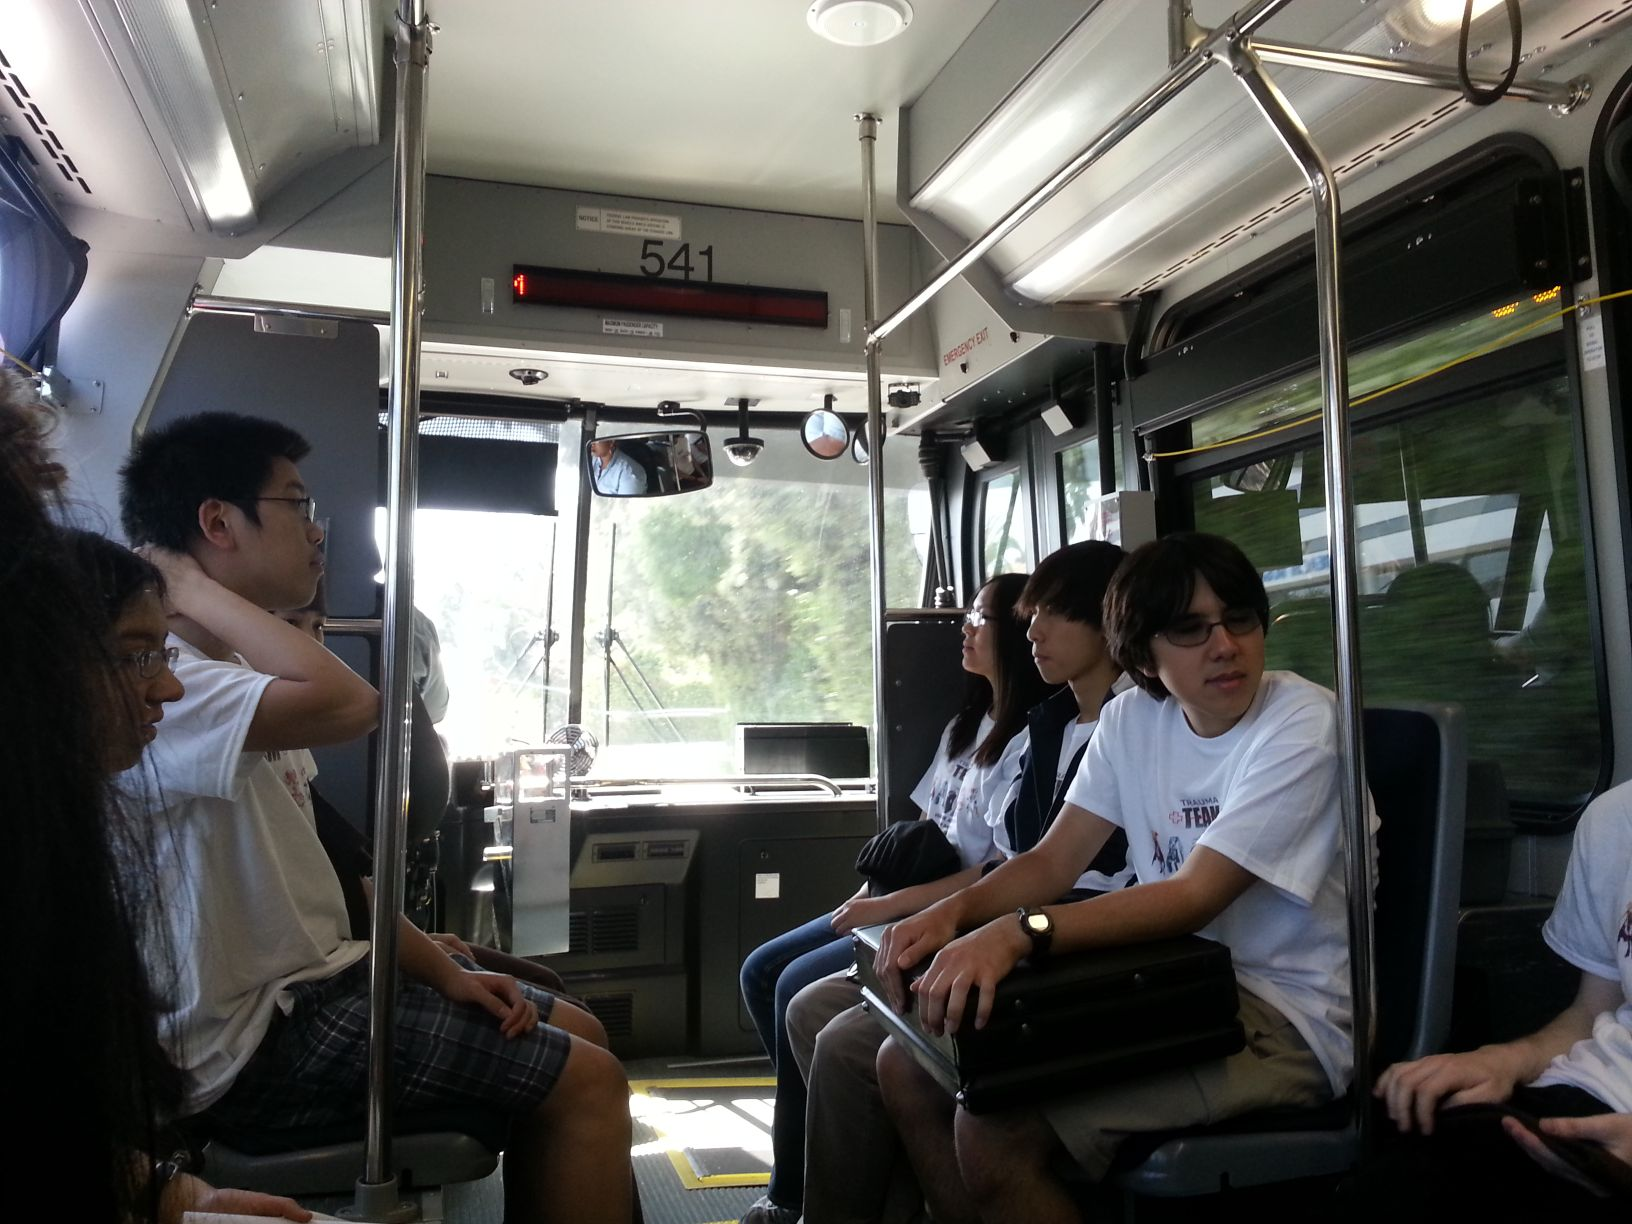 Delphi's Clue tells us to go to Manhattan beach (which turns out to be a long commute).  Here we are on the bus.